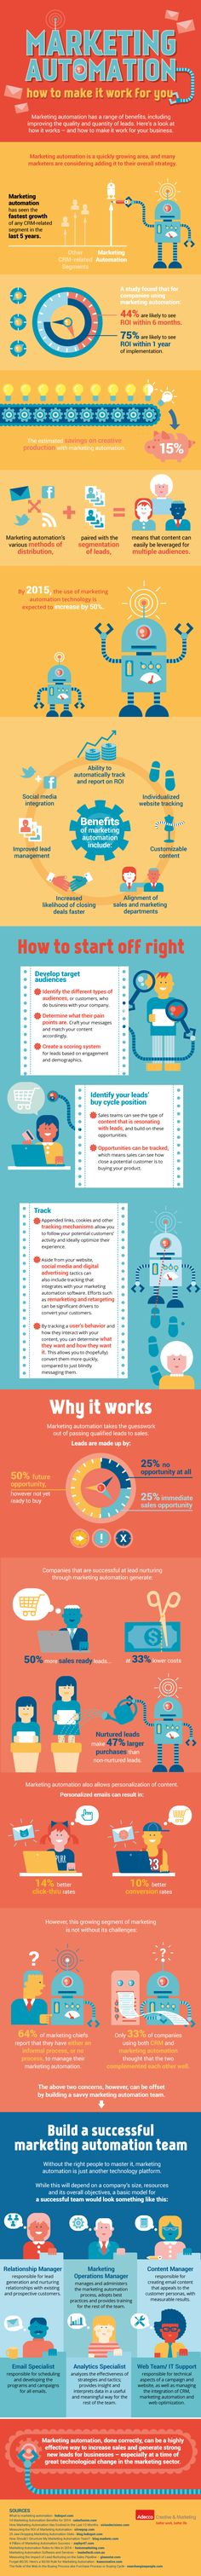 An infographic on using tools and talent to make marketing automation work for you.